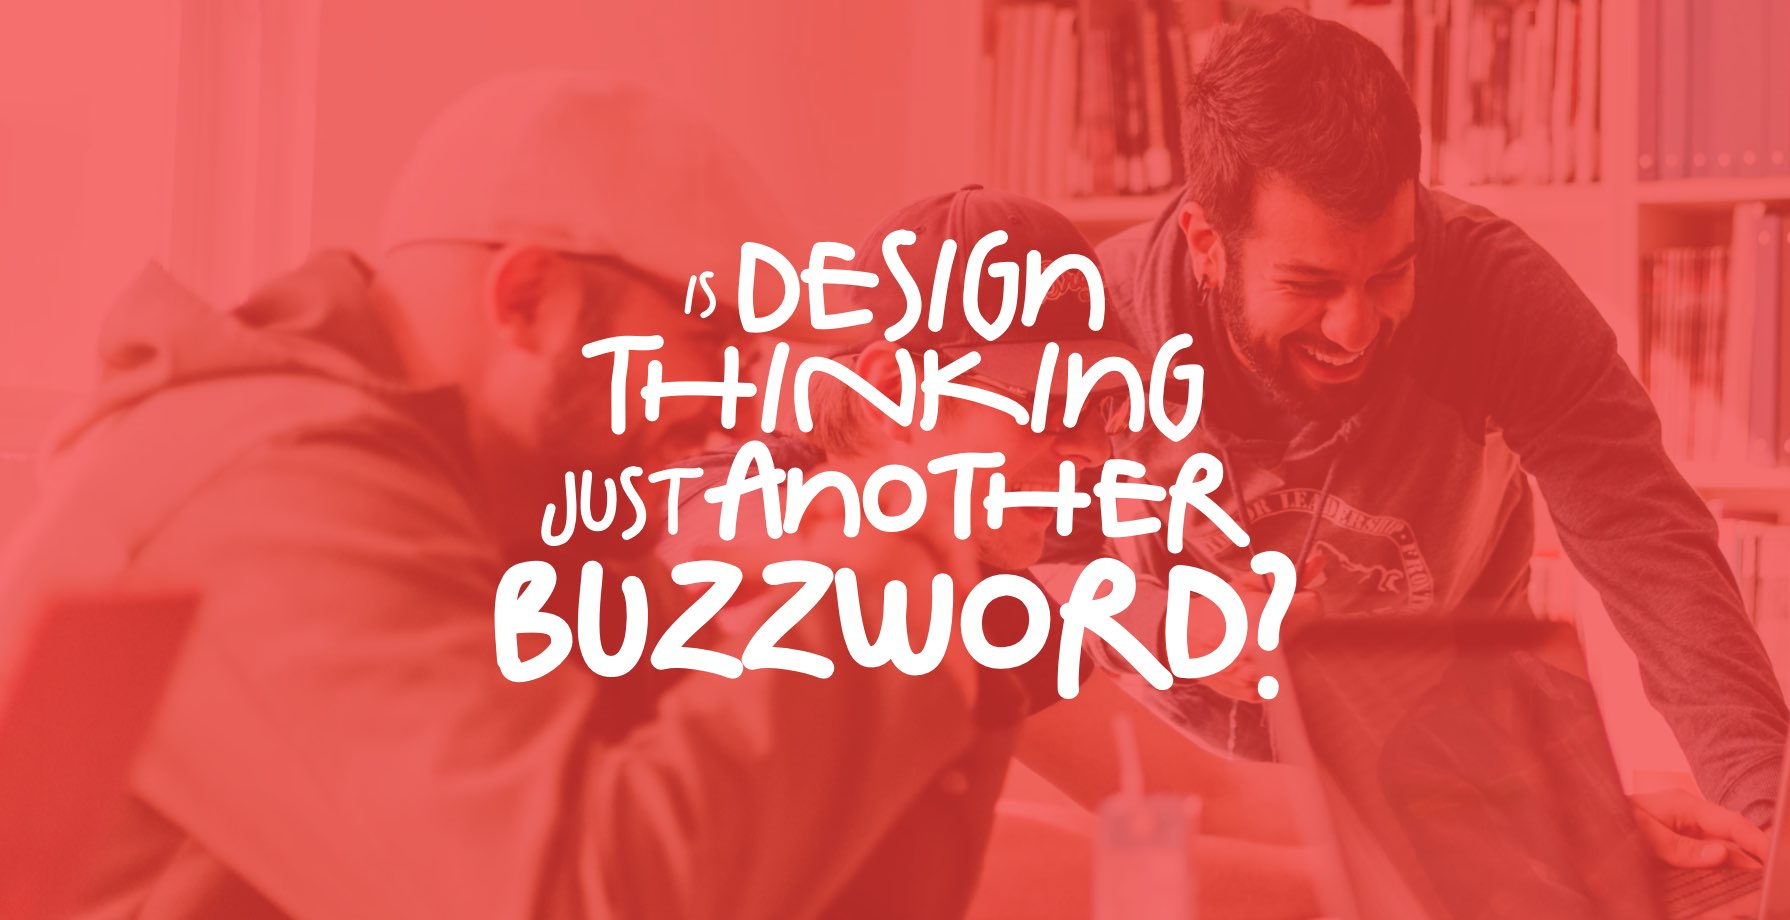 Is Design Thinking Just Another Buzzword? 1